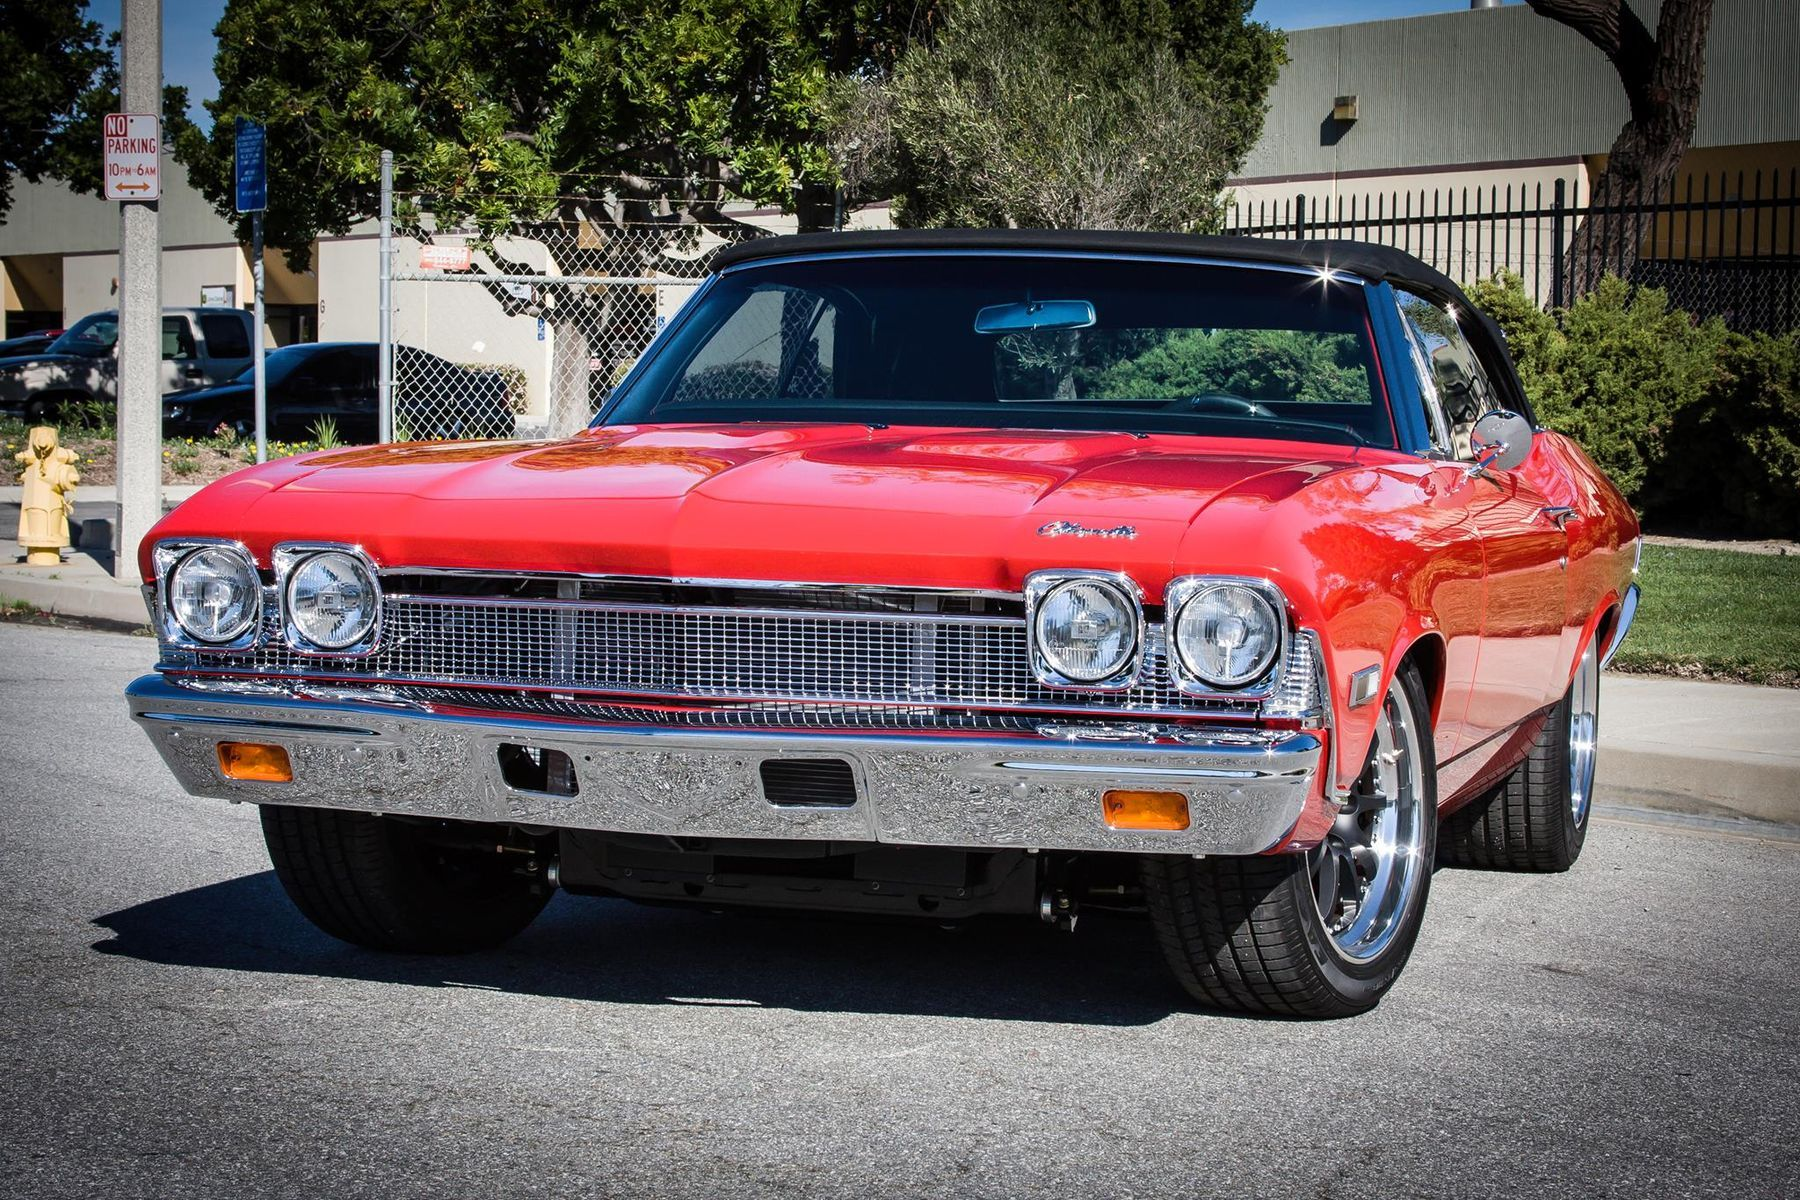 1968 Chevrolet Chevelle | Chevelle Convertible by JCG on Forgeline ZX3R Wheels